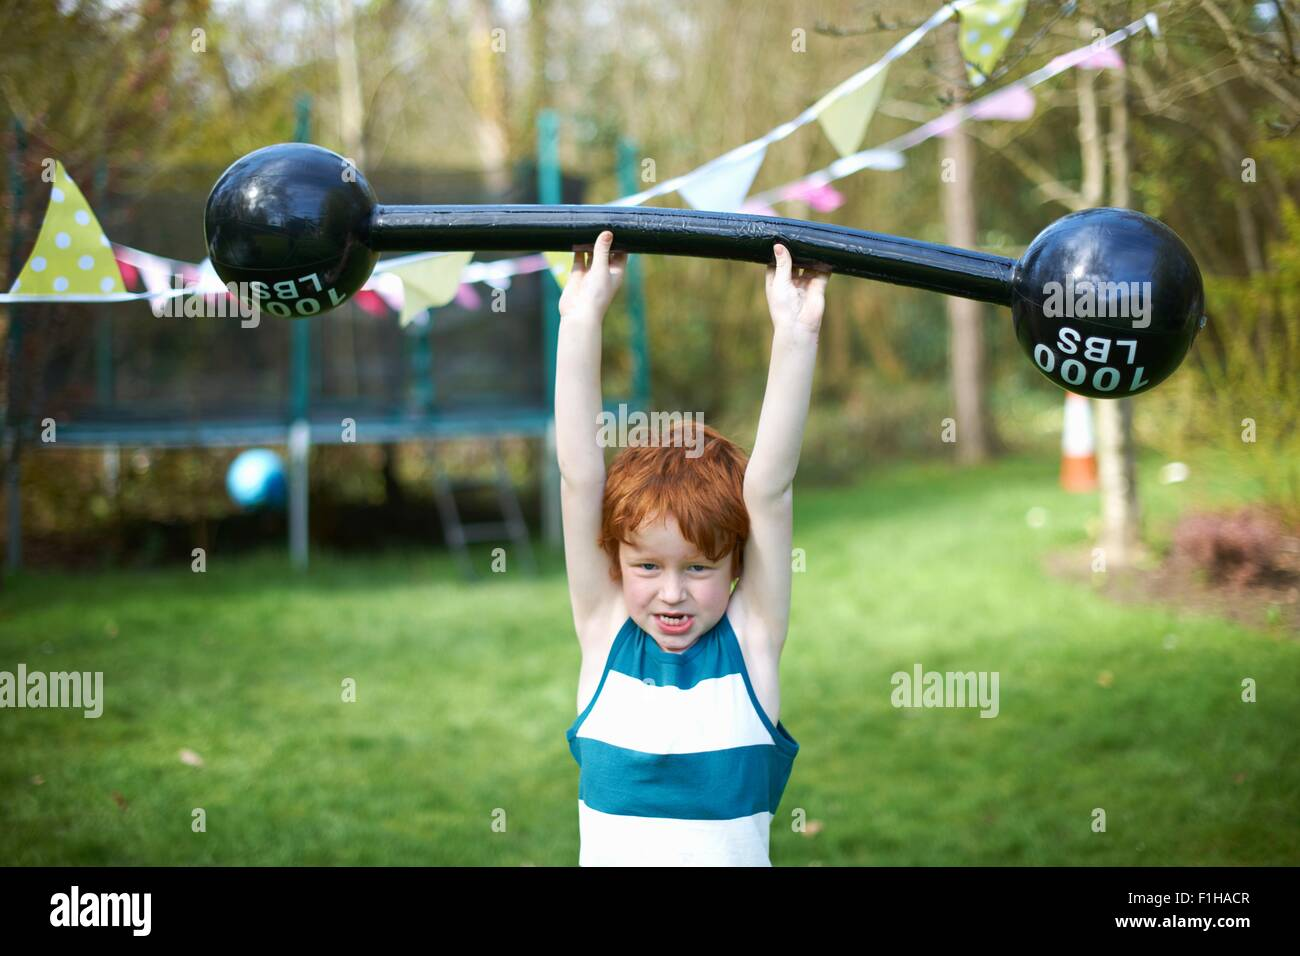 Young boy lifting pretend barbell, outdoors - Stock Image